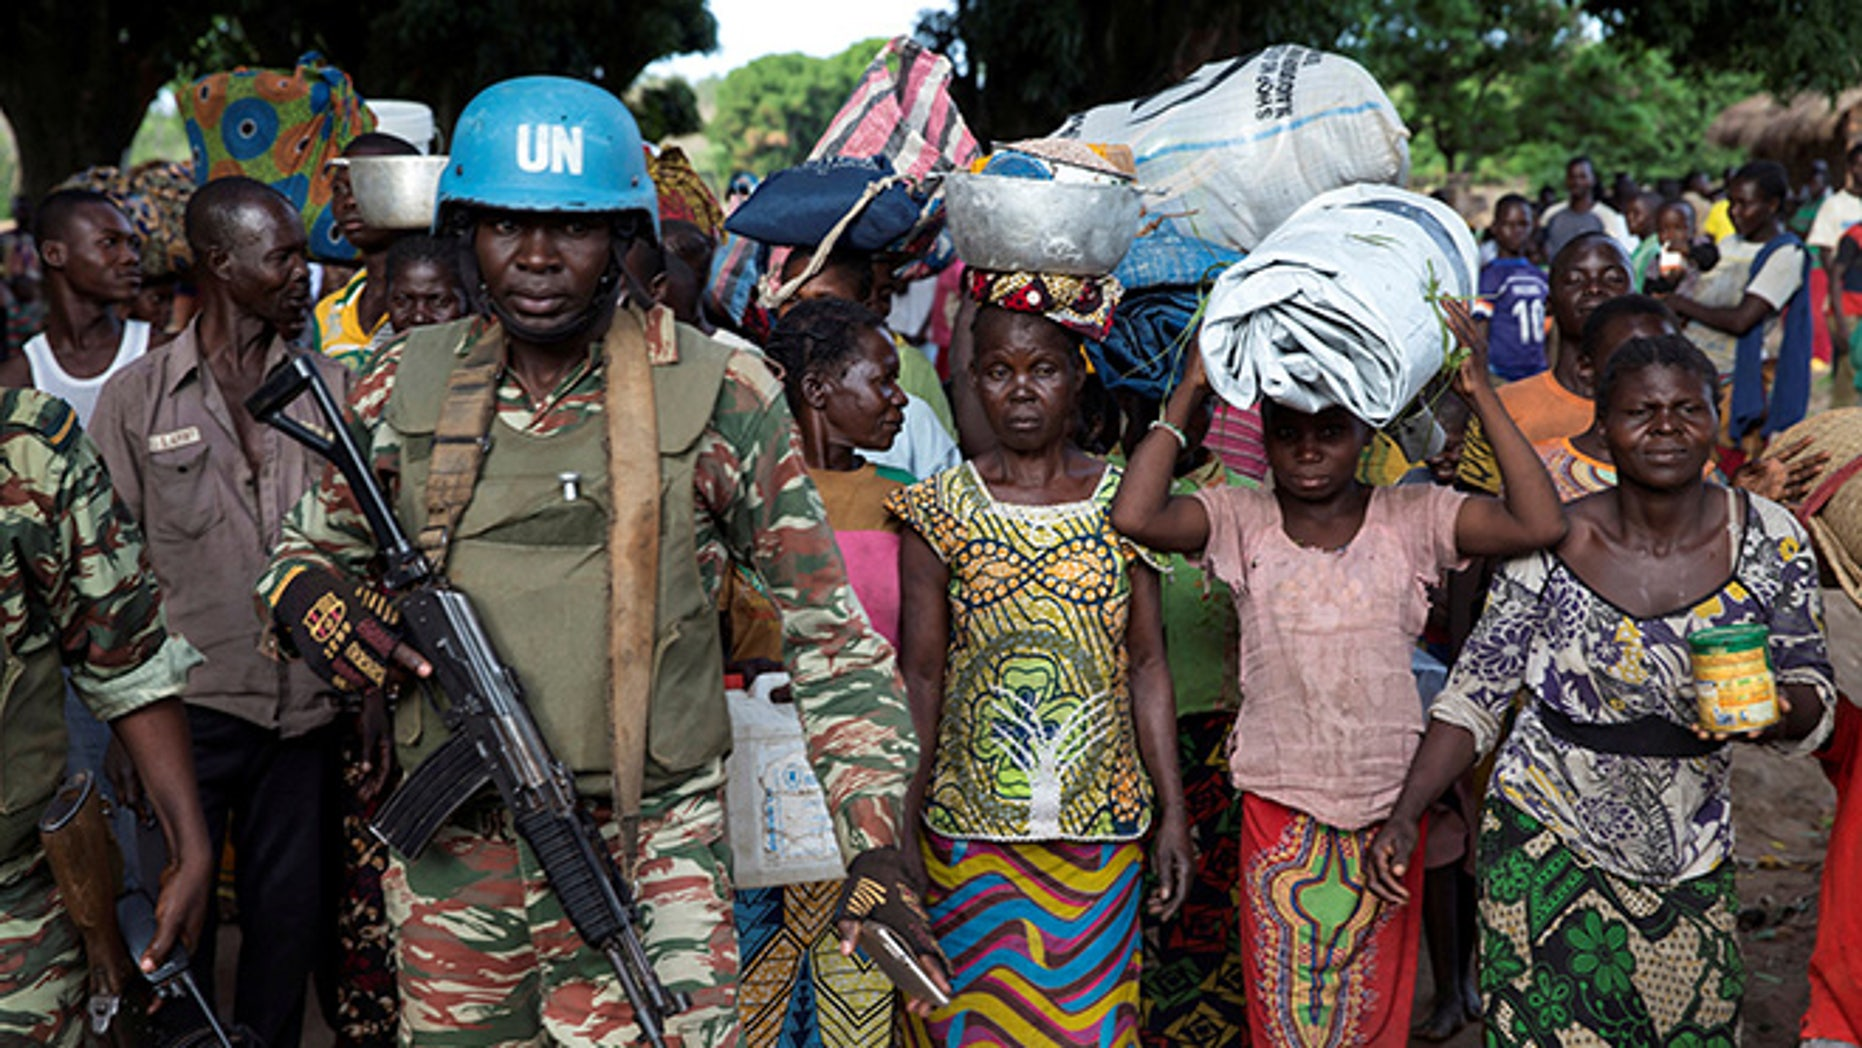 A Cameroonian United Nations peacekeeping soldier guards women fleeing the village of Zike as they arrive to the village of Bambara, Central African Republic, April 25, 2017. Picture taken April 25, 2017. REUTERS/Baz Ratner     TPX IMAGES OF THE DAY - RTS143AS